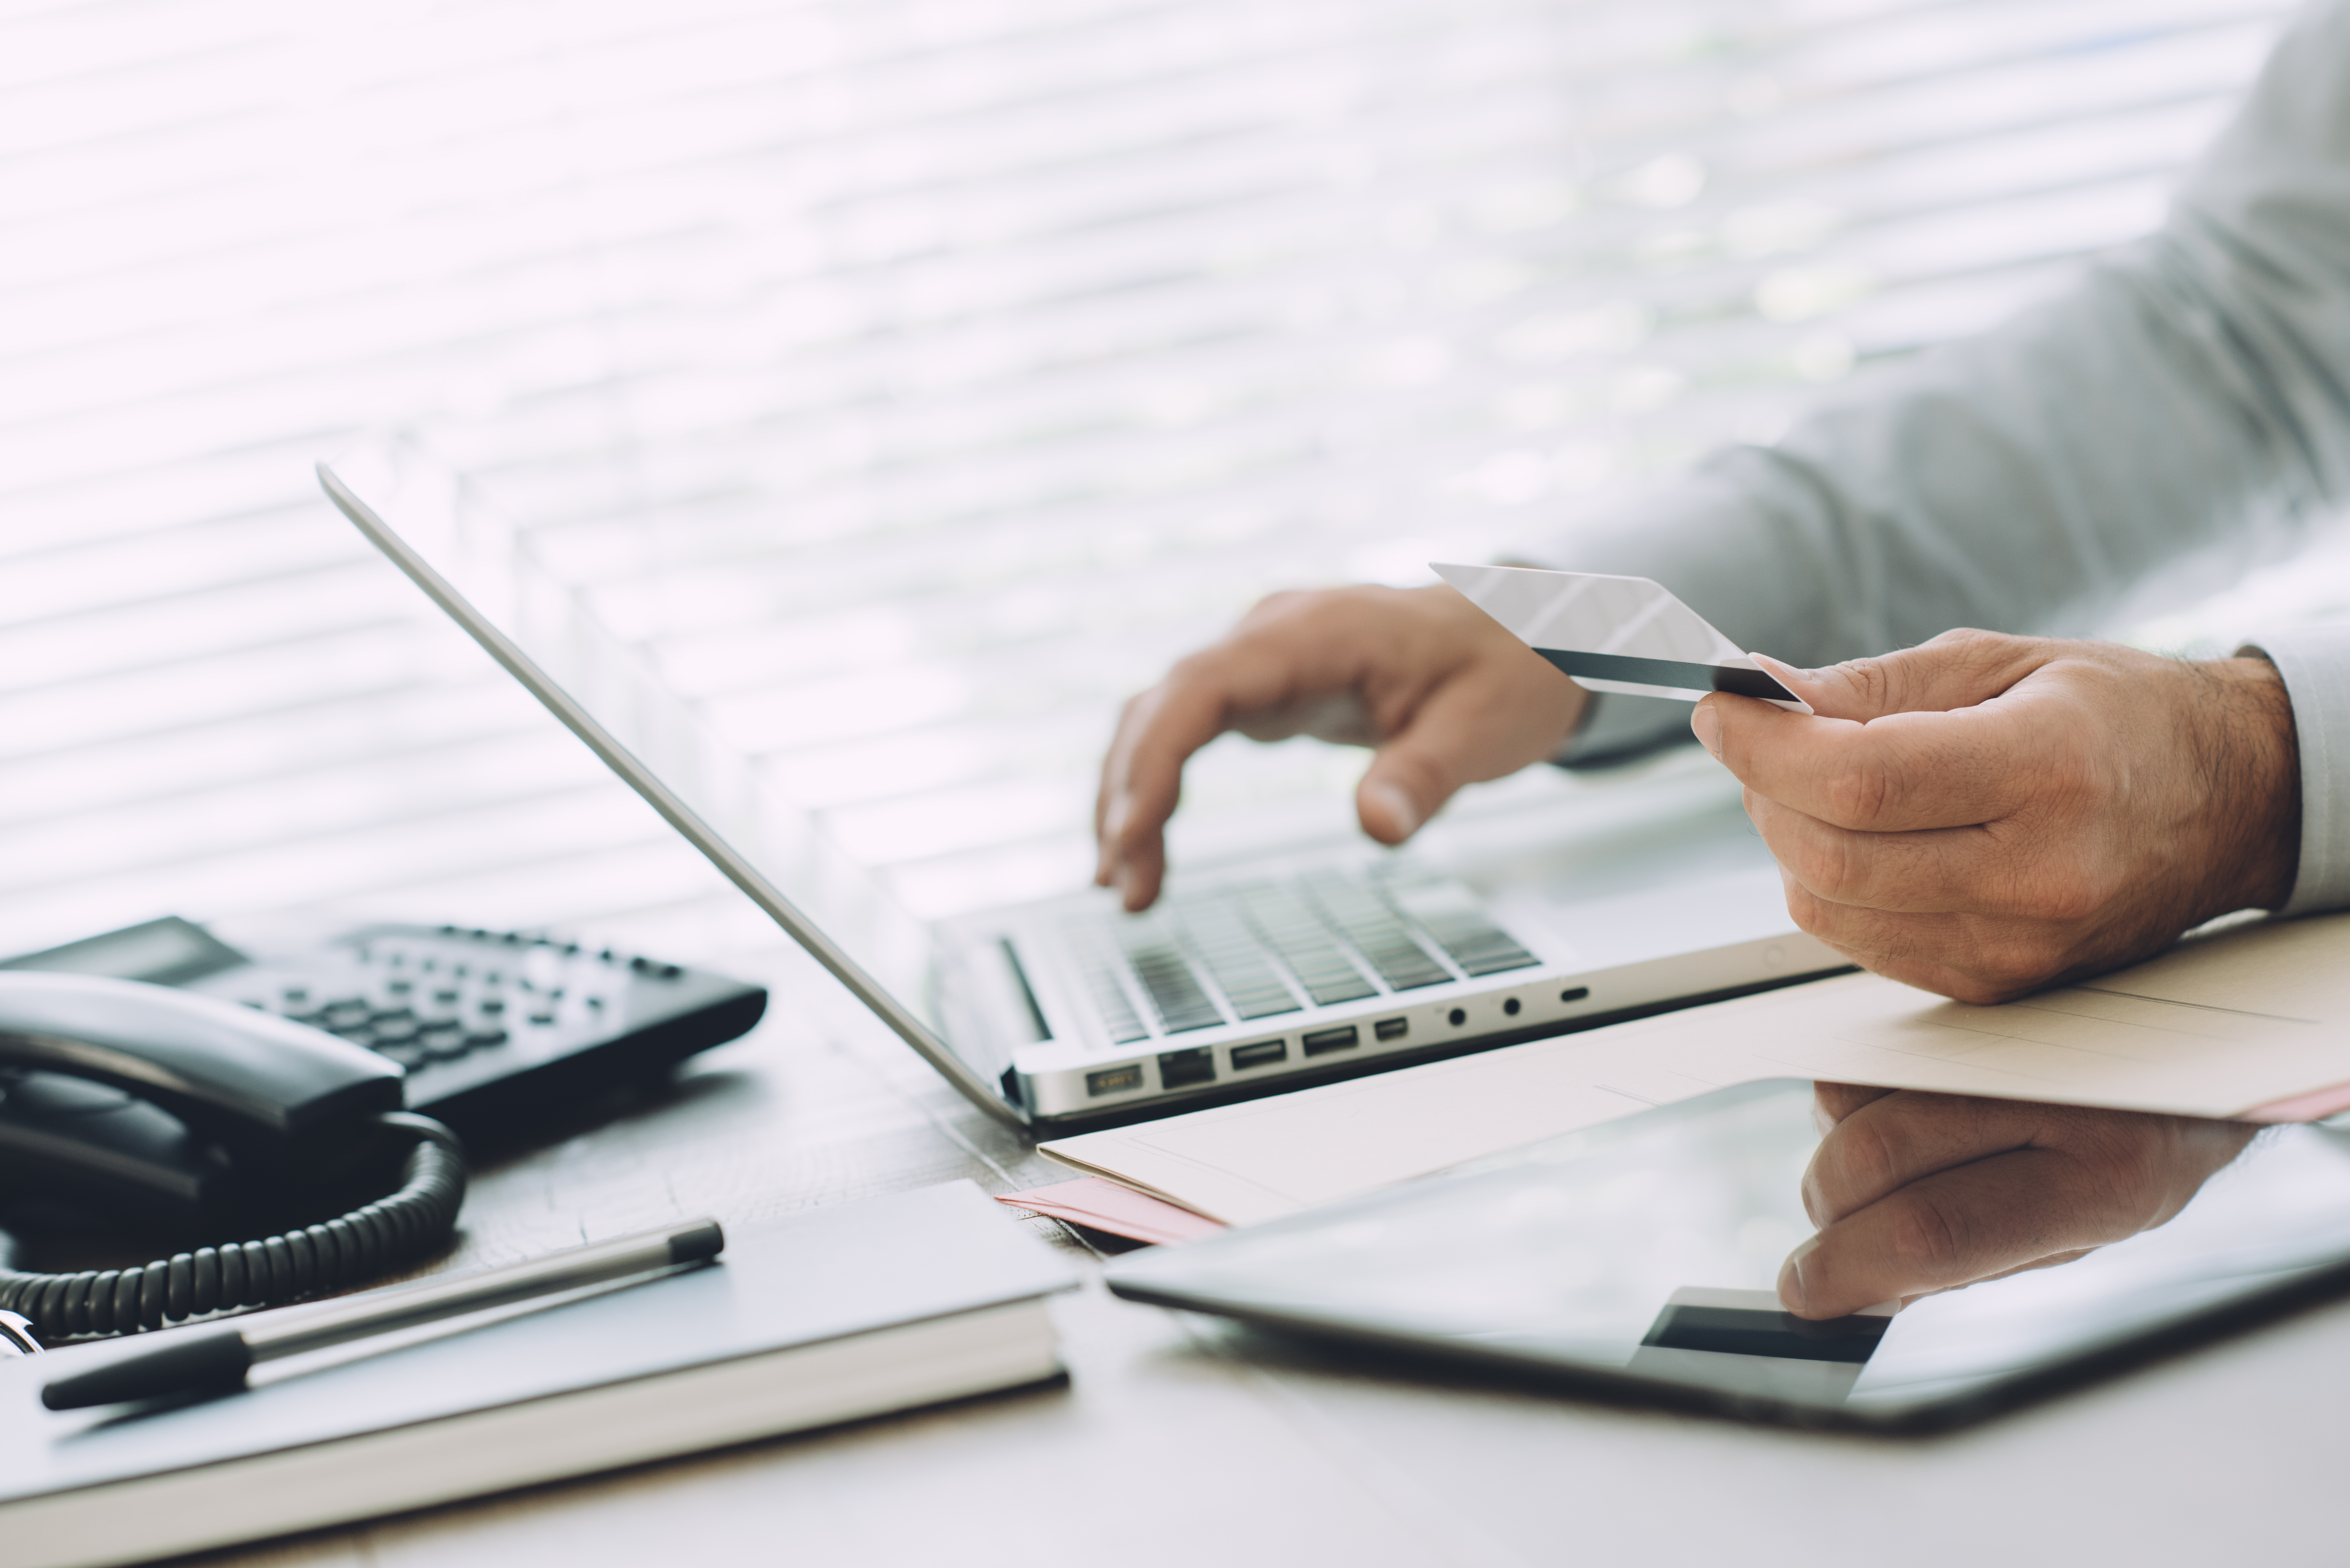 person using online banking